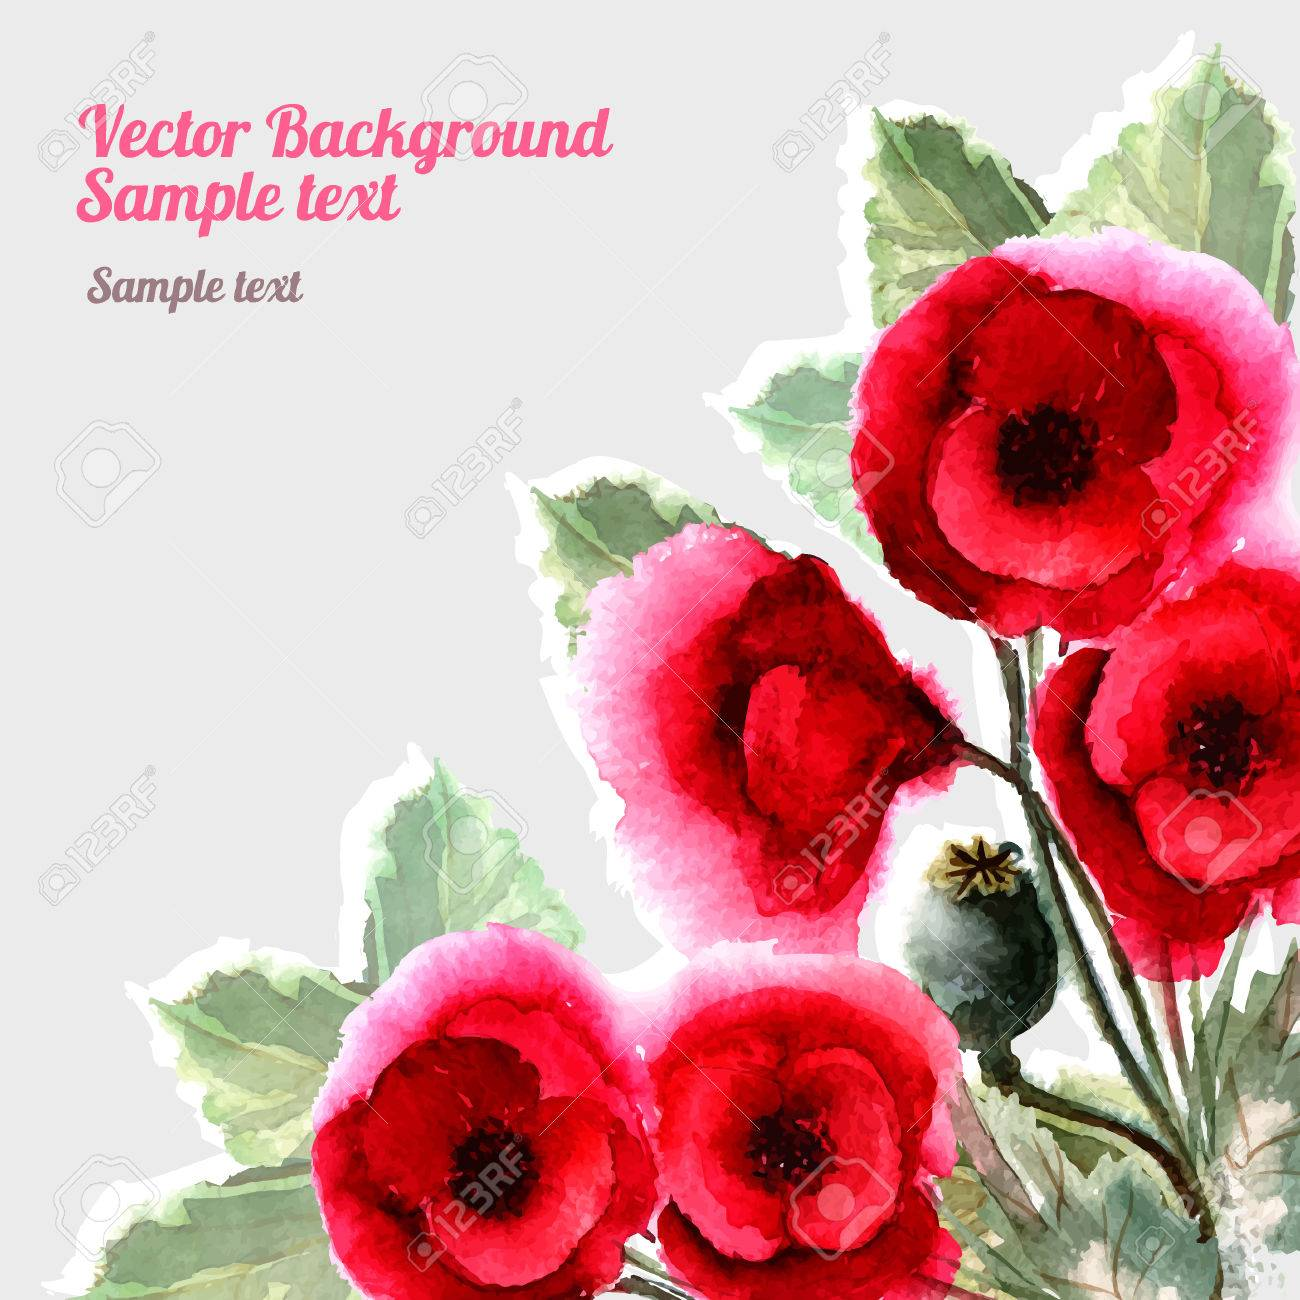 Romantic watercolor card with flowers poppies decor design greeting romantic watercolor card with flowers poppies decor design greeting cards wedding invitations marriage m4hsunfo